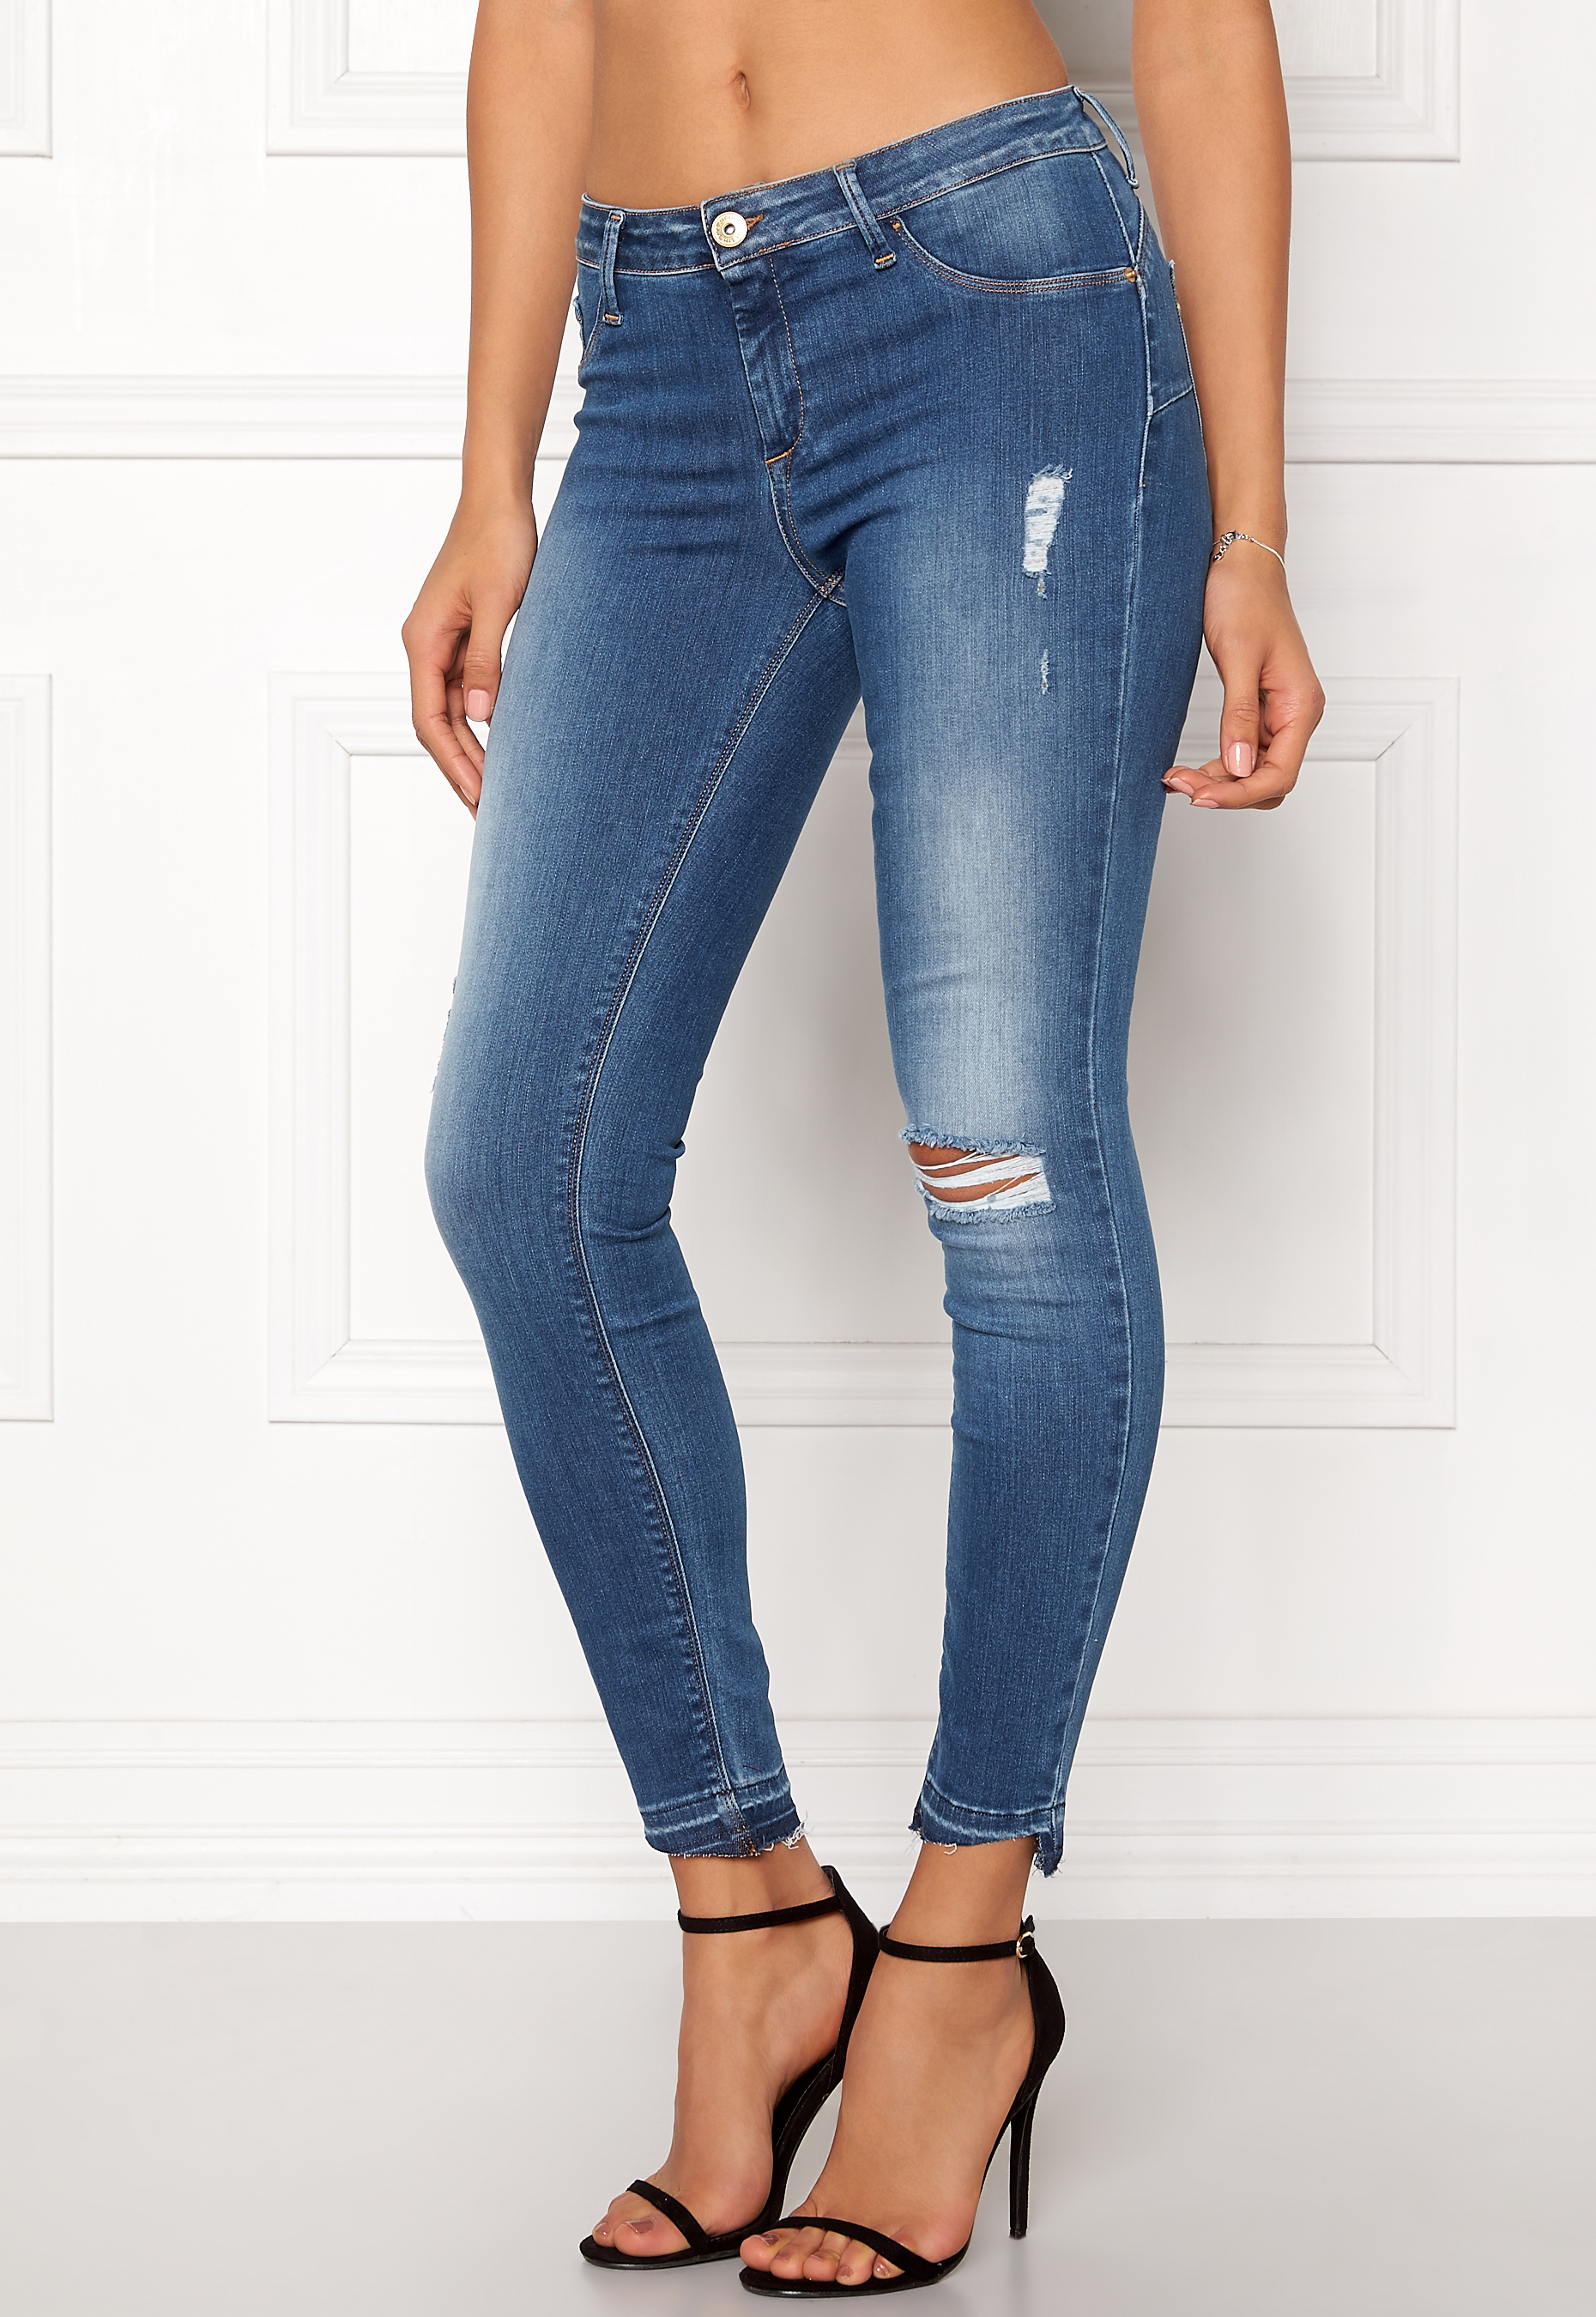 8179c01ebfd TIFFOSI One-Size Jeans Denim - Bubbleroom